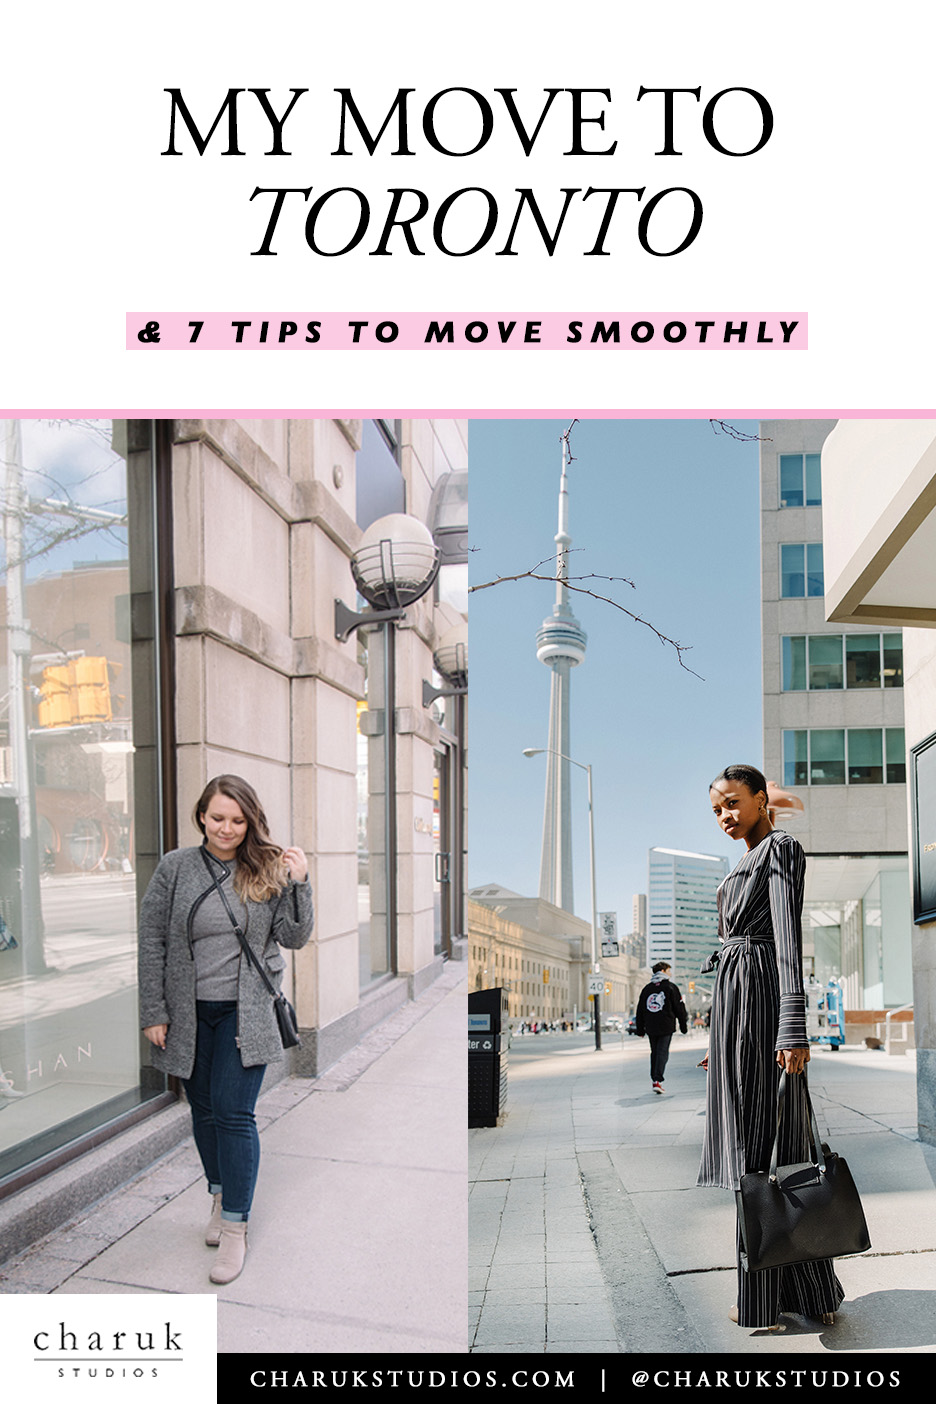 My move to Toronto and tips to move smoothly.jpg